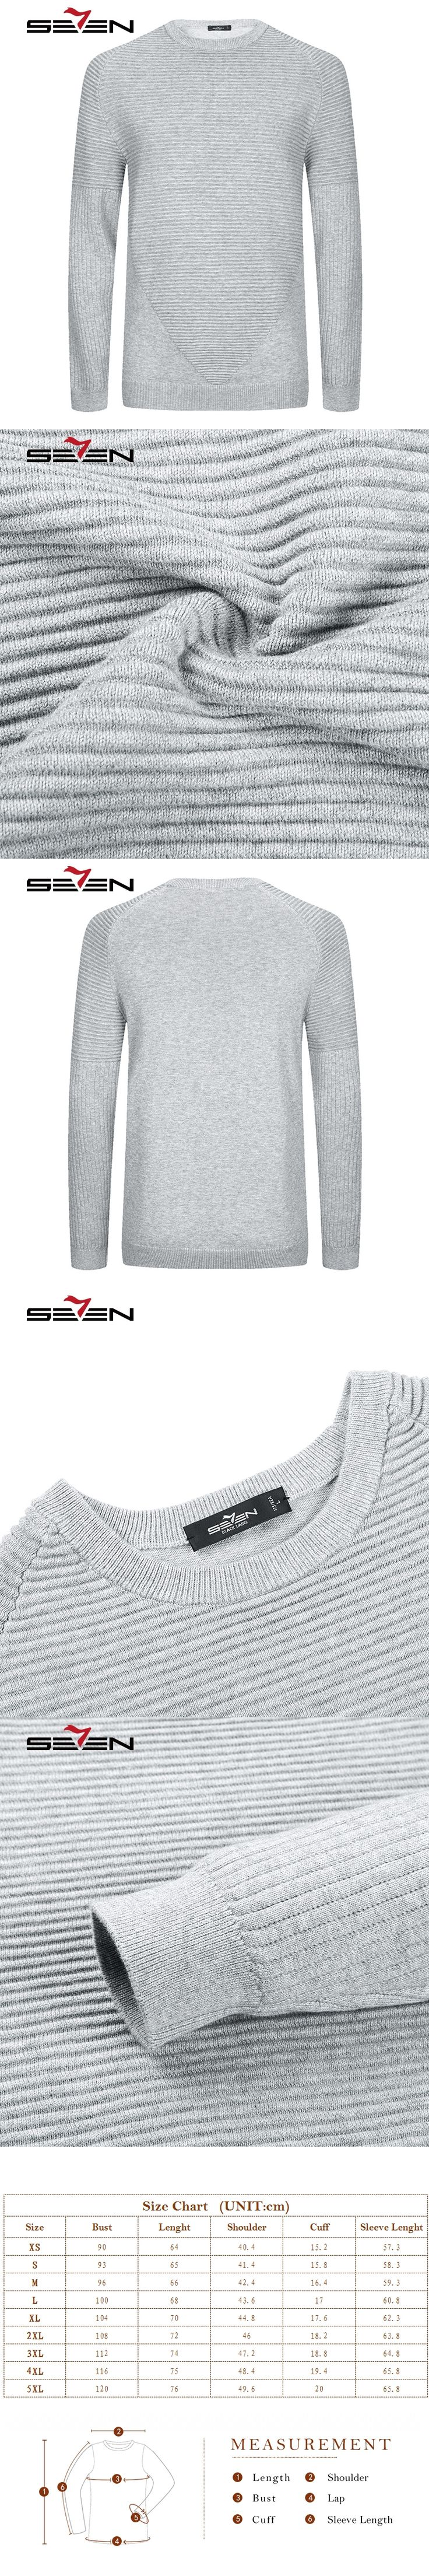 Seven7 High Quality 100% Cashmere Wool Knitwear Sweater Men Pleated O neck Male Pullover Gray Silver Color Jumpers Top 113Y68070